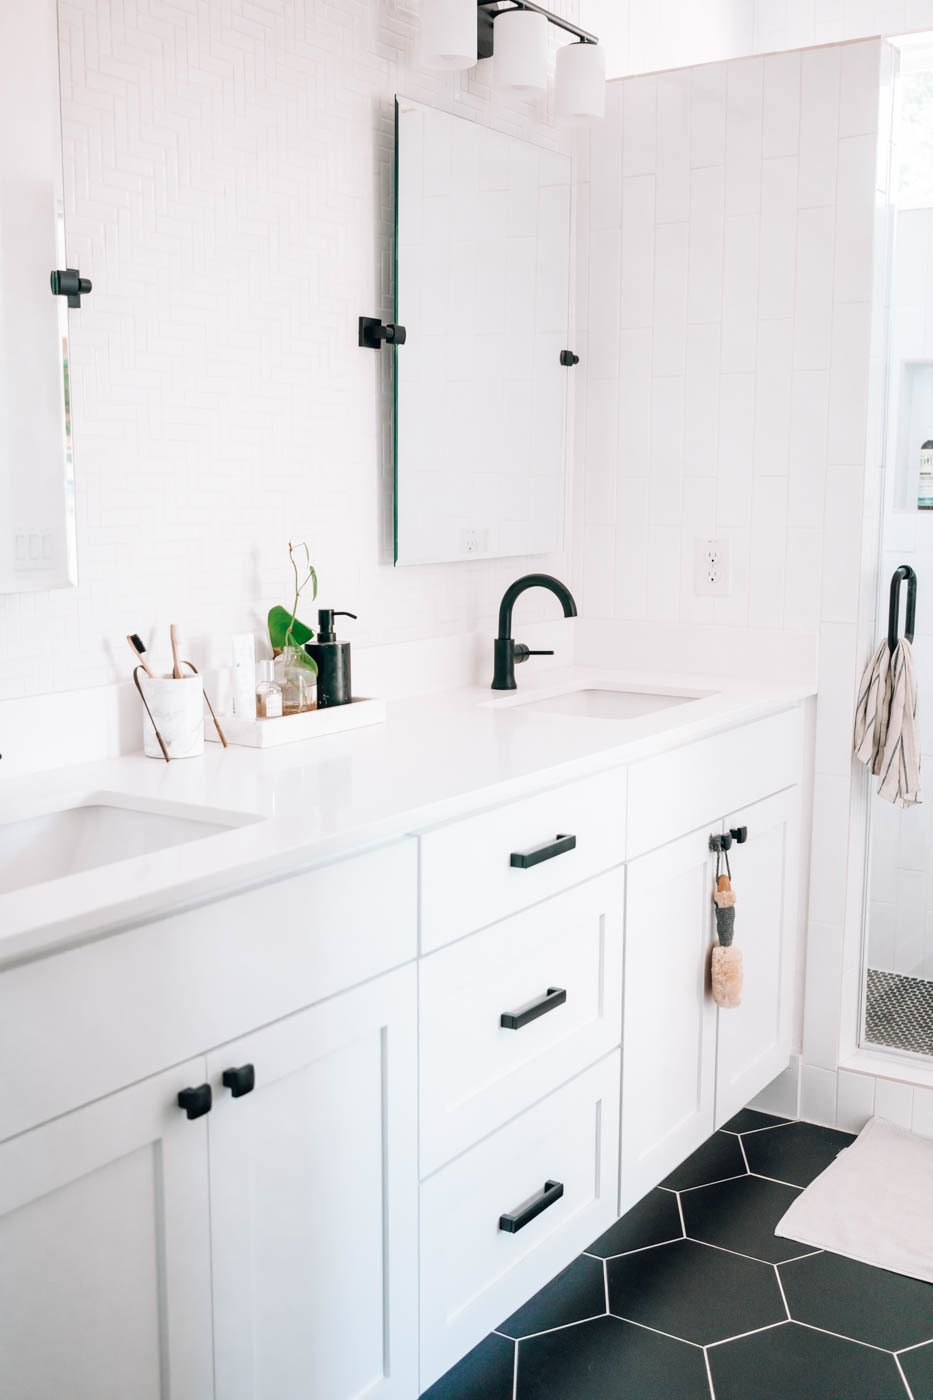 Bath Room, Laminate Counter, Wall Lighting, Ceramic Tile Floor, Enclosed Shower, Drop In Sink, and Two Piece Toilet The bathroom is clean and minimal to maintain a serene (and easy-to-clean) environment.  Photo 8 of 8 in My House: A Wellness Blogger Carves Out a Soothing Retreat in Austin